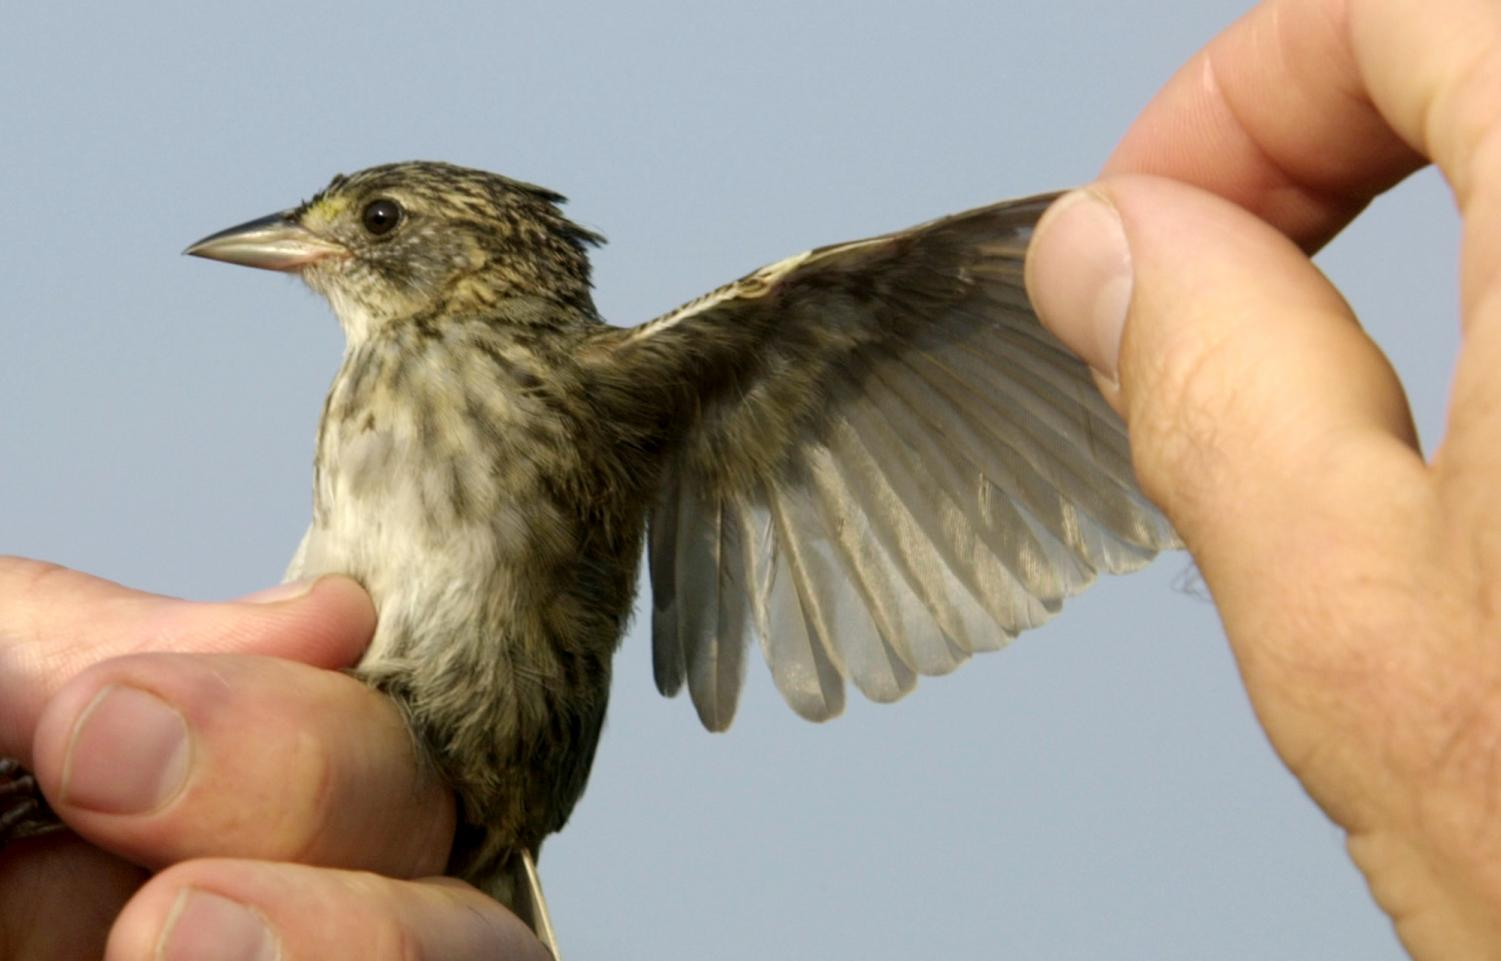 Professor Chris Hill, an ornithologist at Coastal Carolina University, inspects a seaside sparrow during a field study on a salt marsh on Waites Island.